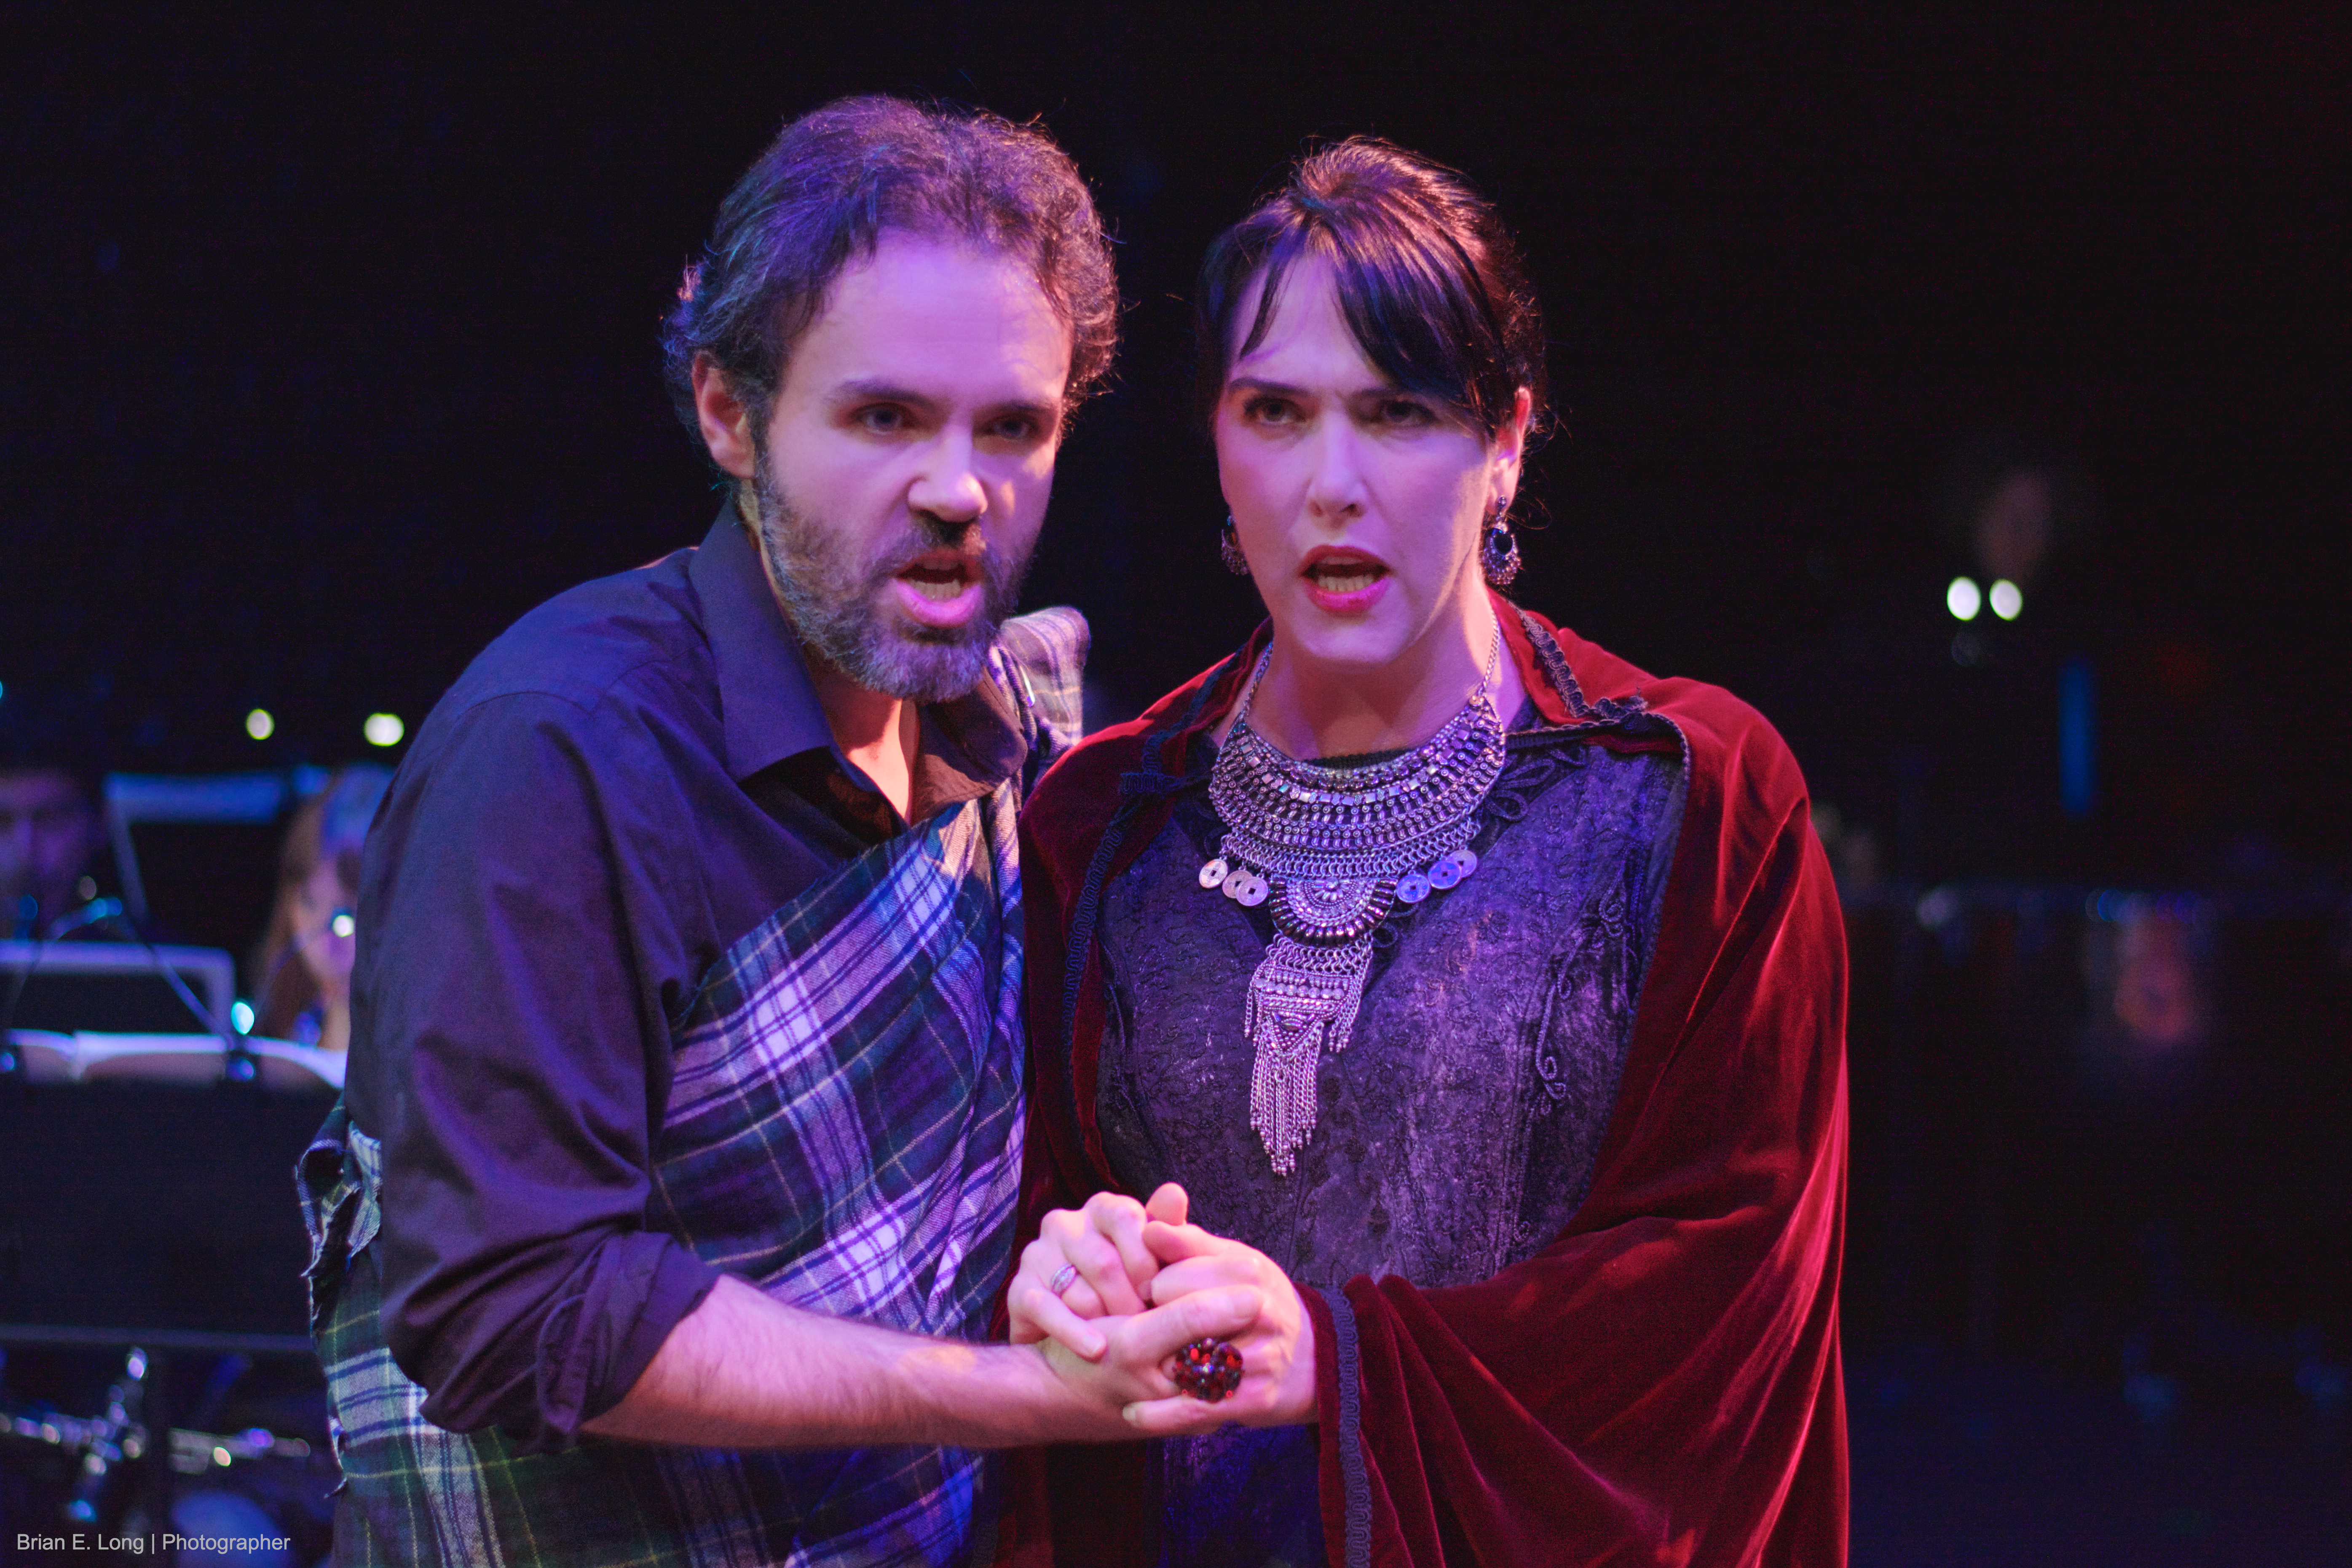 BWW Reviews: dell'Arte Opera Ensemble's MACBETH is Atmospheric and Intimate